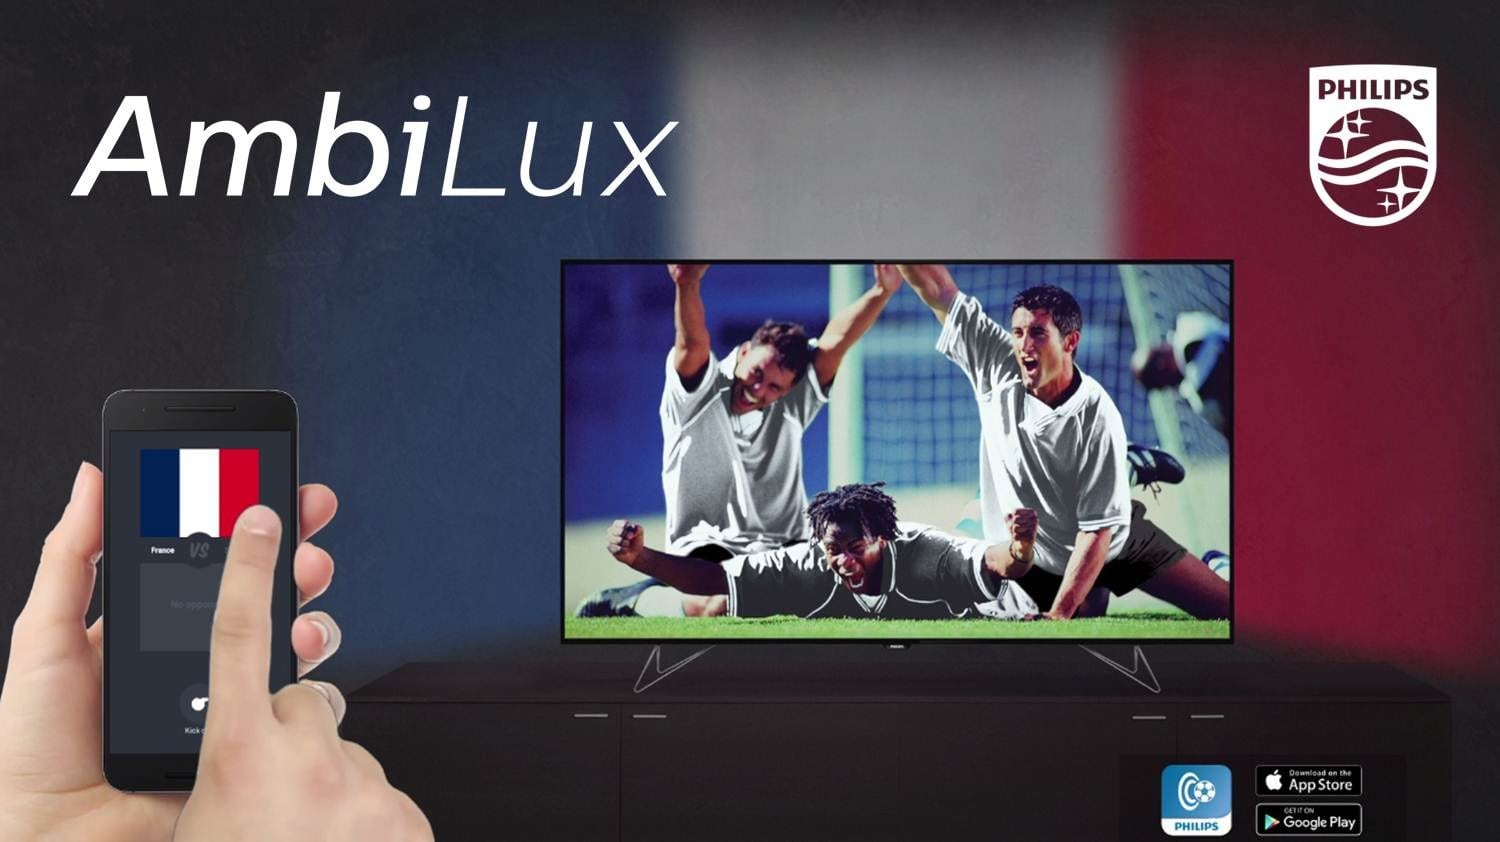 Philips Ambilight TVs Go Interactive For 2018 World Cup